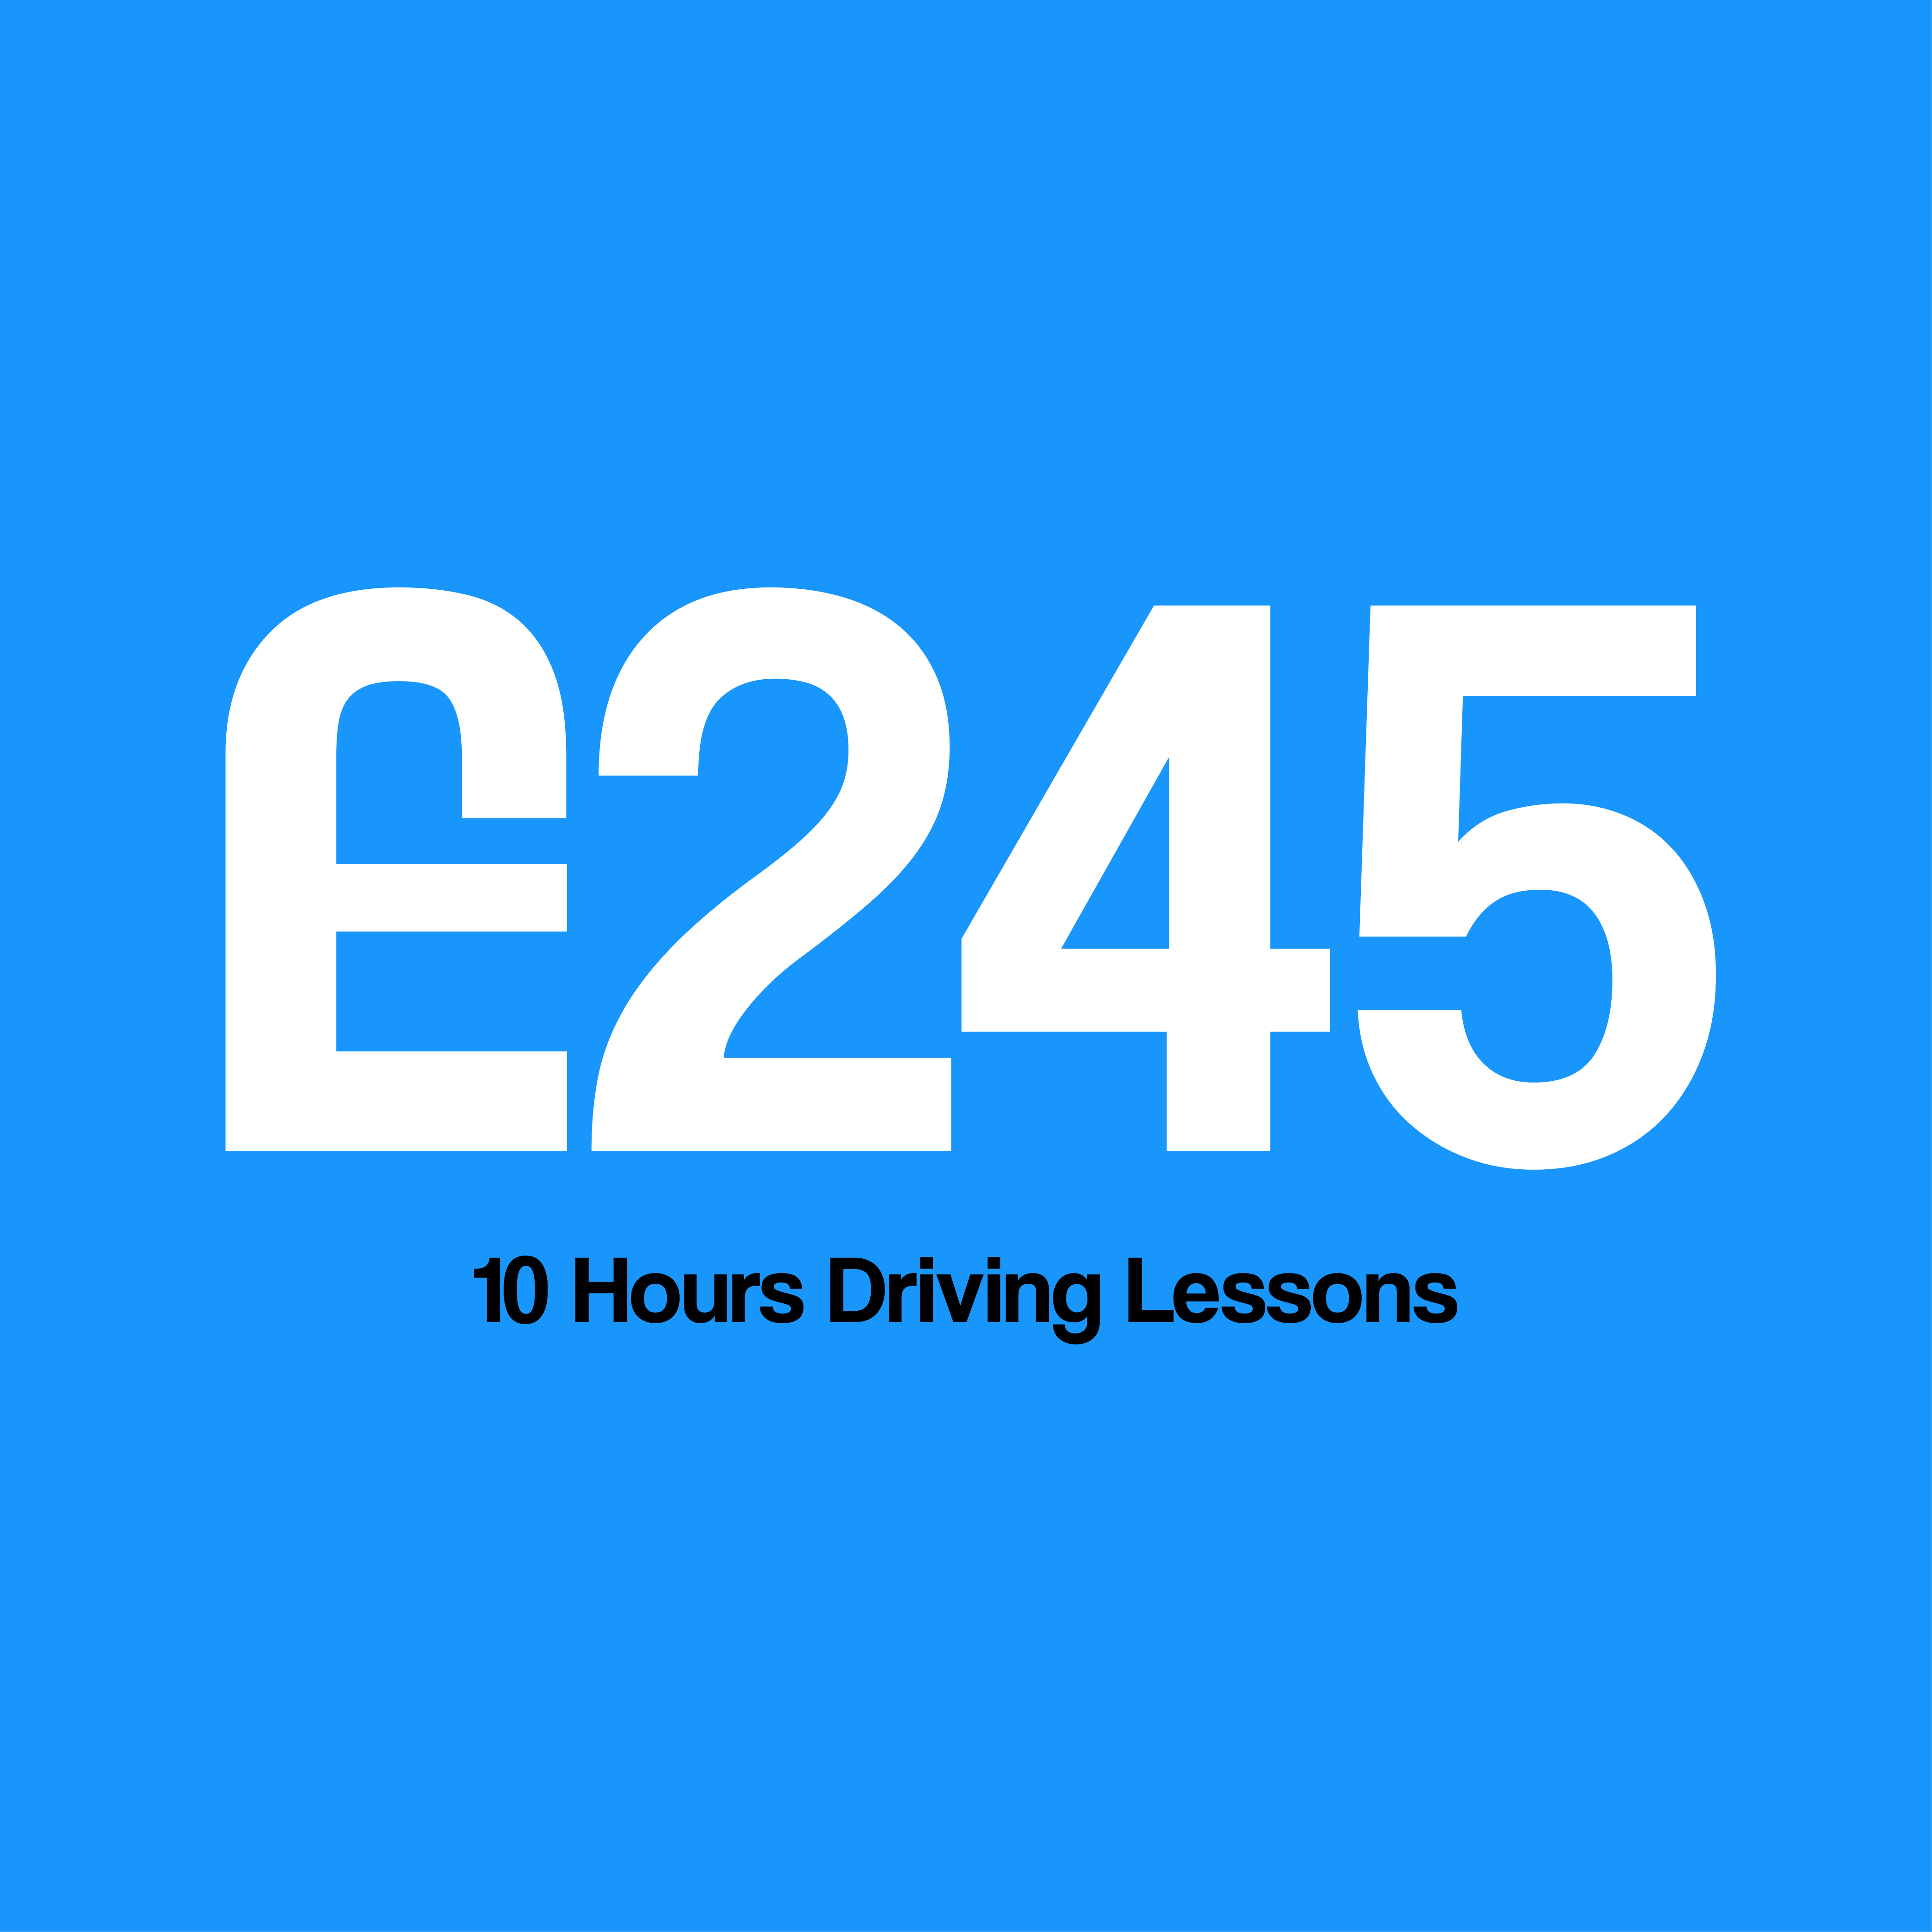 DSM School Of Motoring 10 Hours Driving Lessons